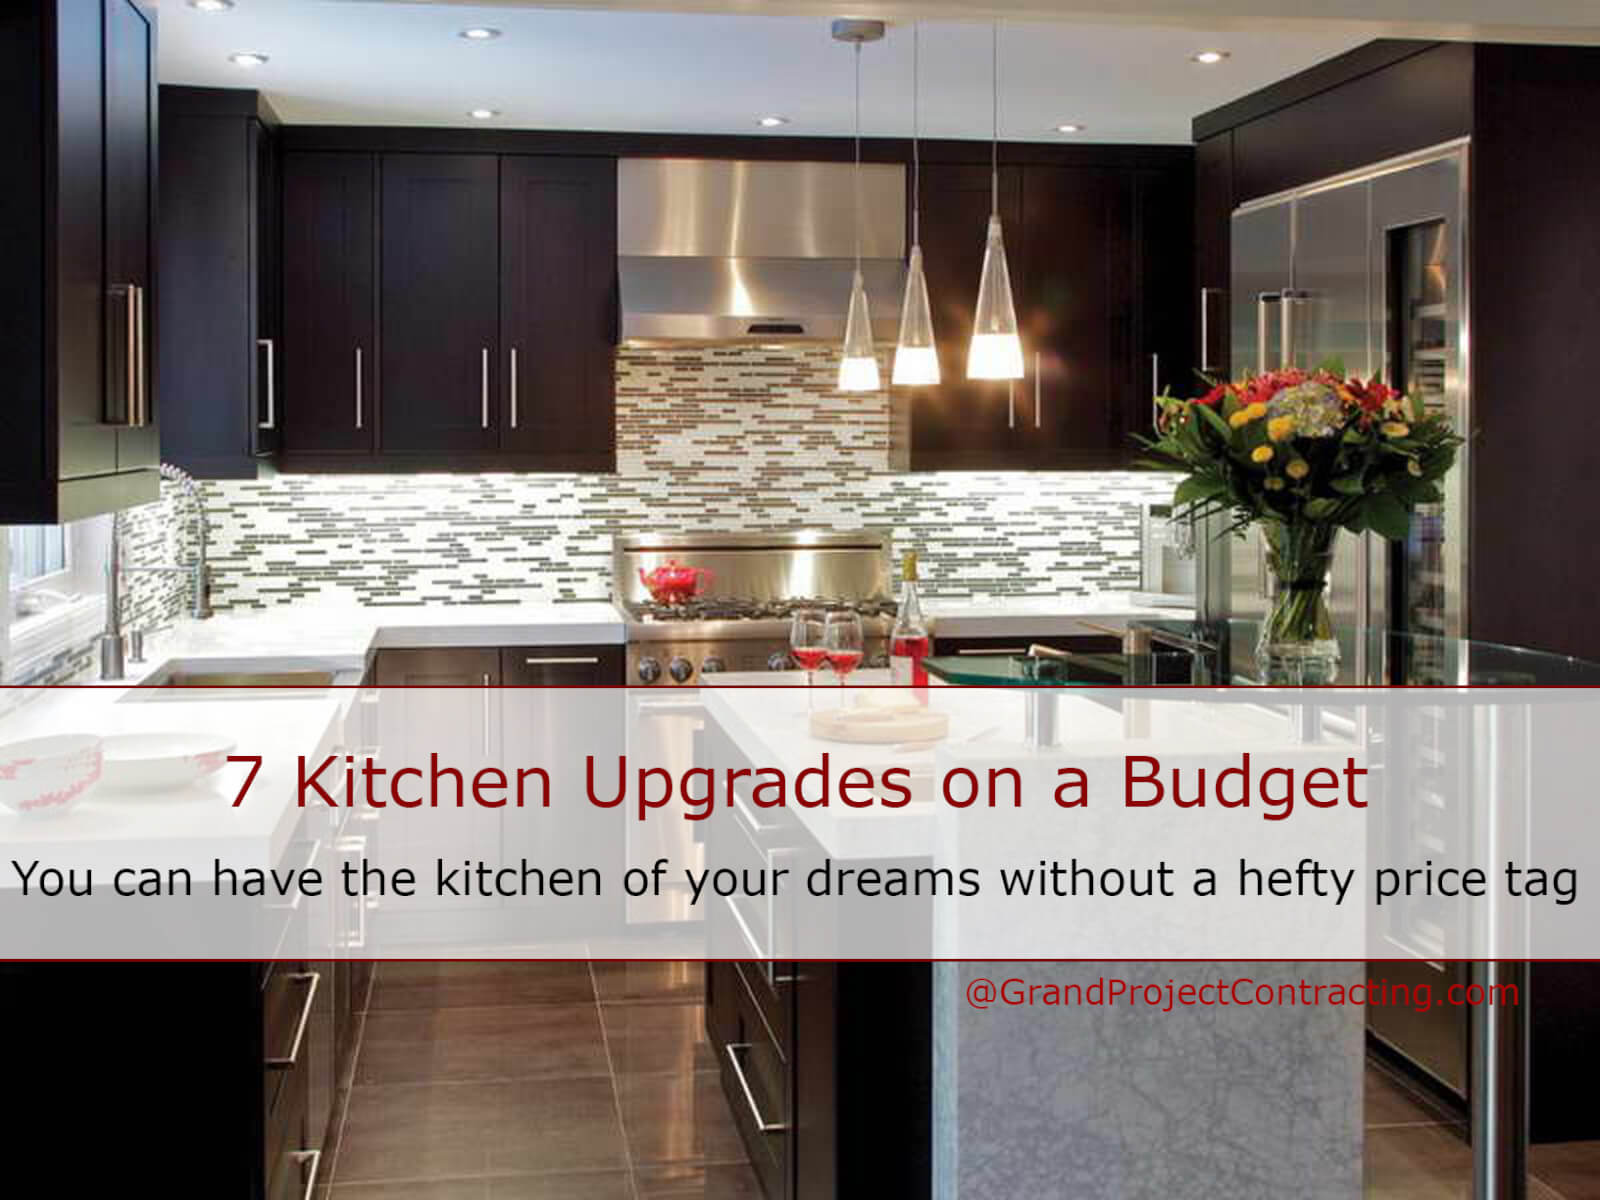 kitchen upgrades frigidaire package 7 on a budget grand project contracting